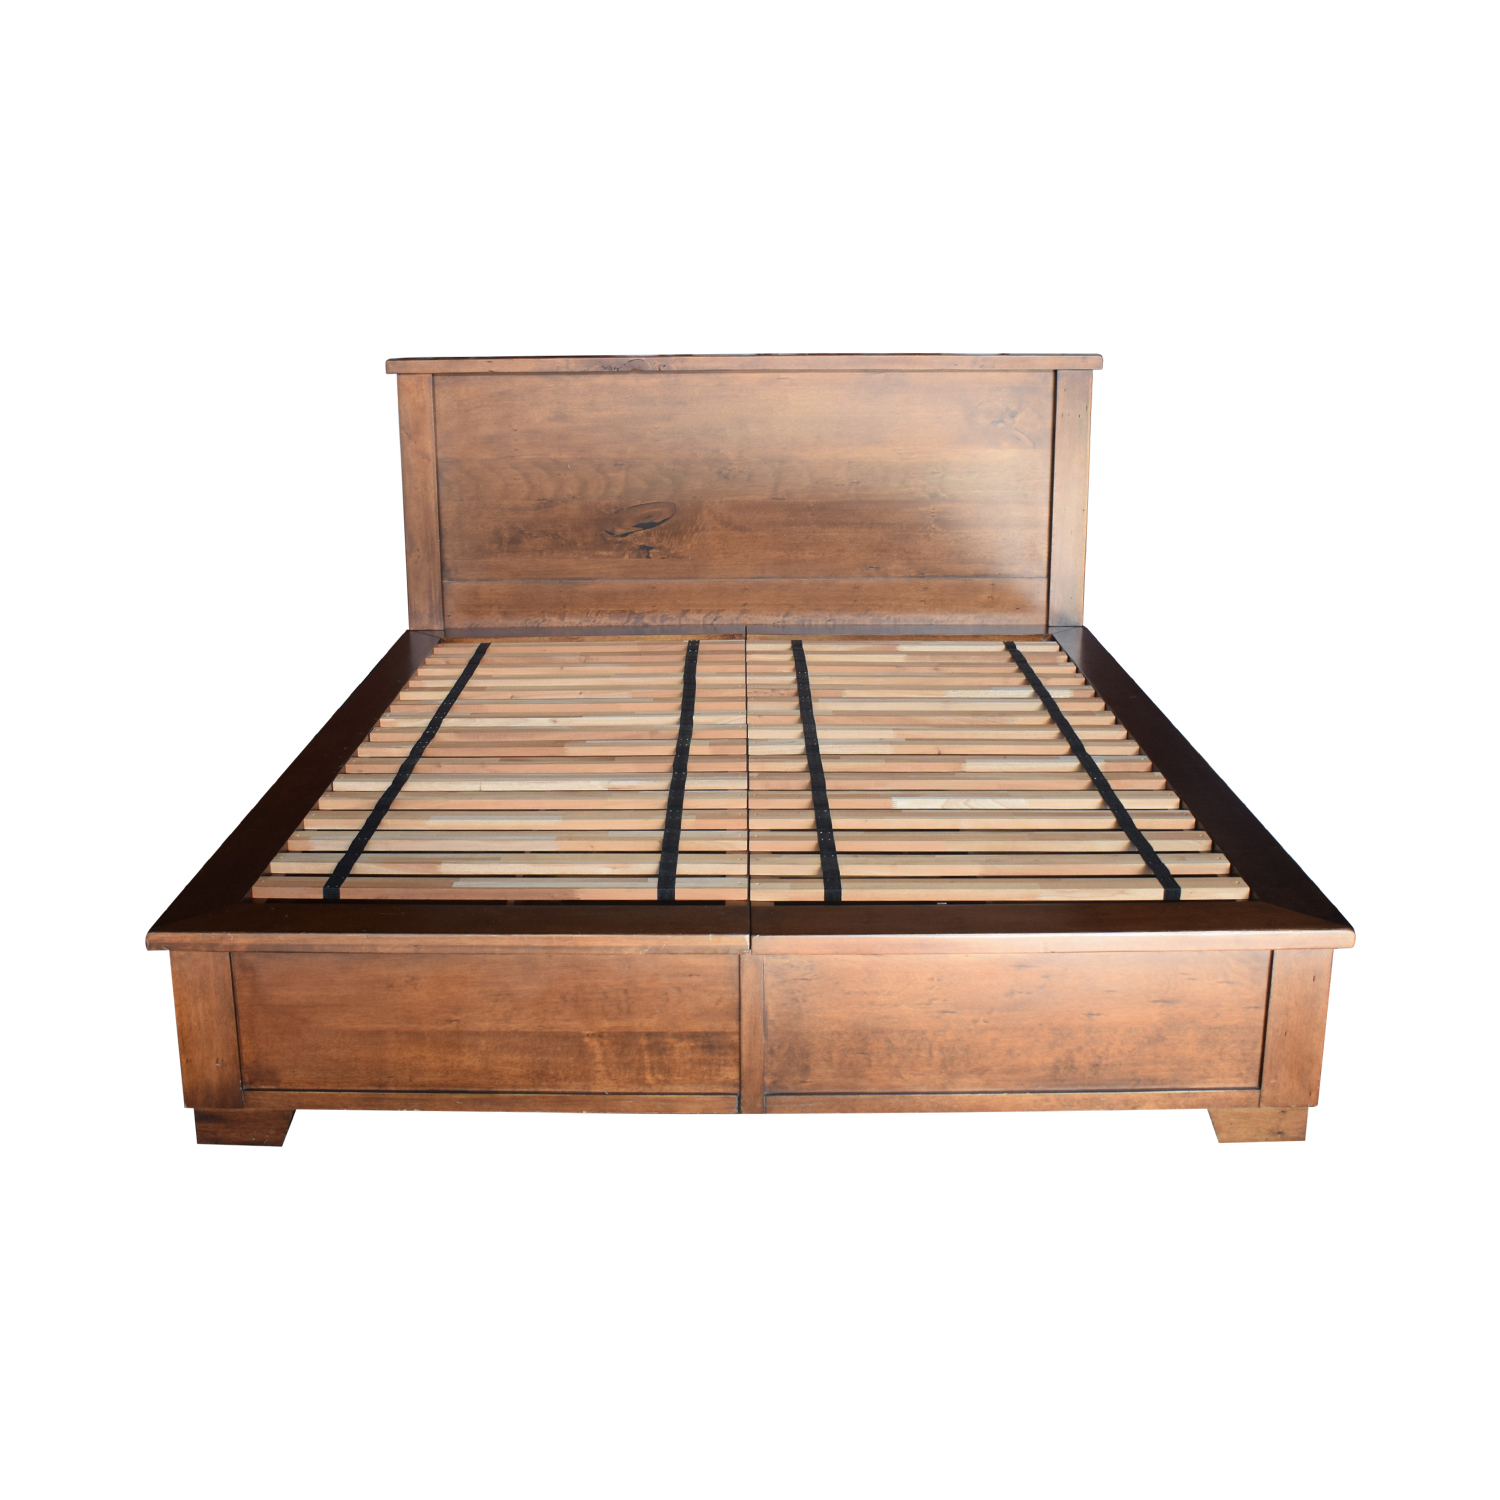 buy Pottery Barn Pottery Barn Sumatra Wood King Platform Bed with Storage online